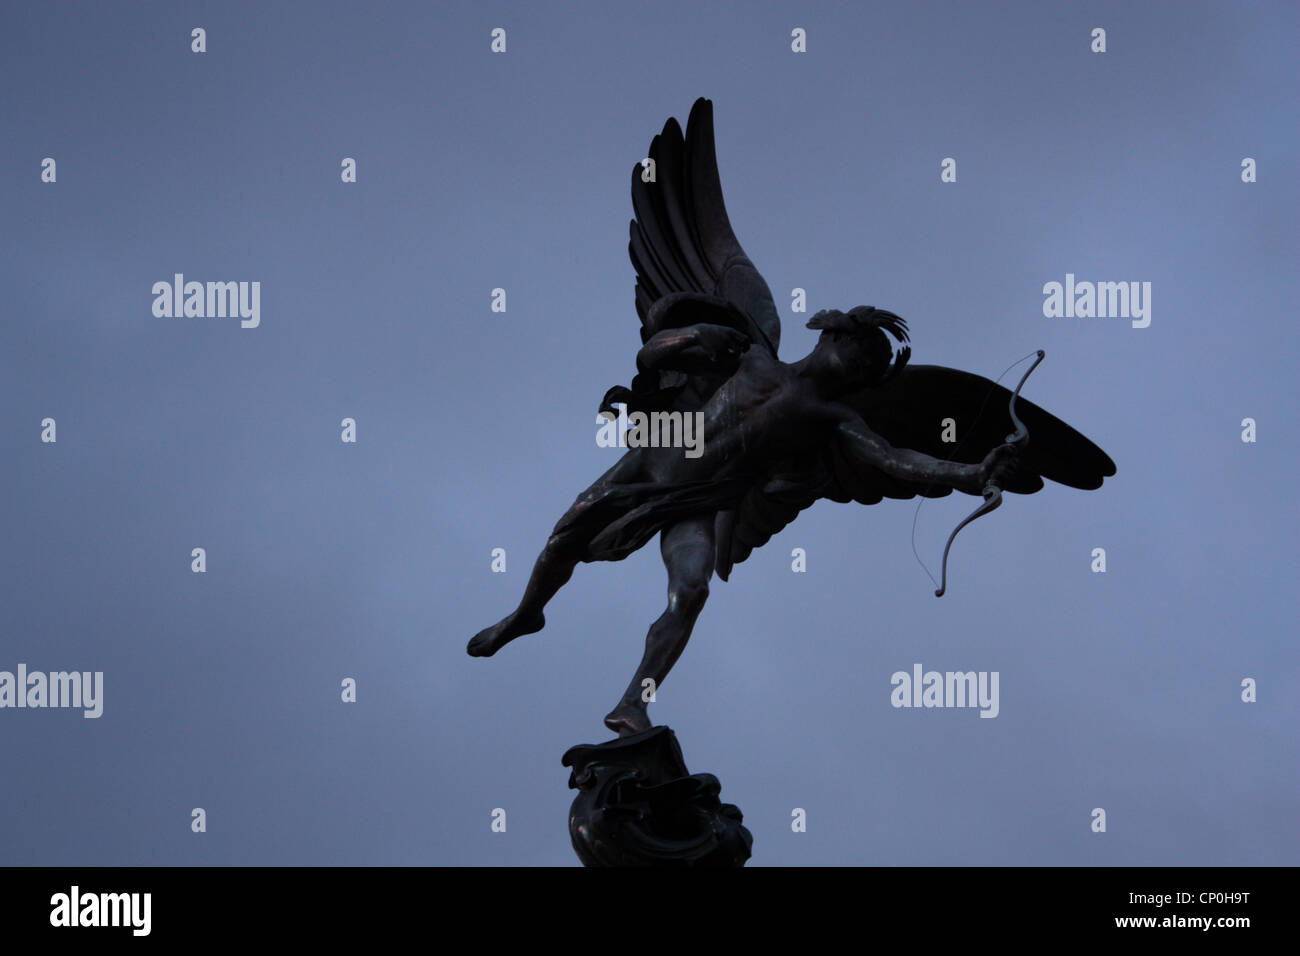 anteros statue in Piccadilly Circus - Stock Image